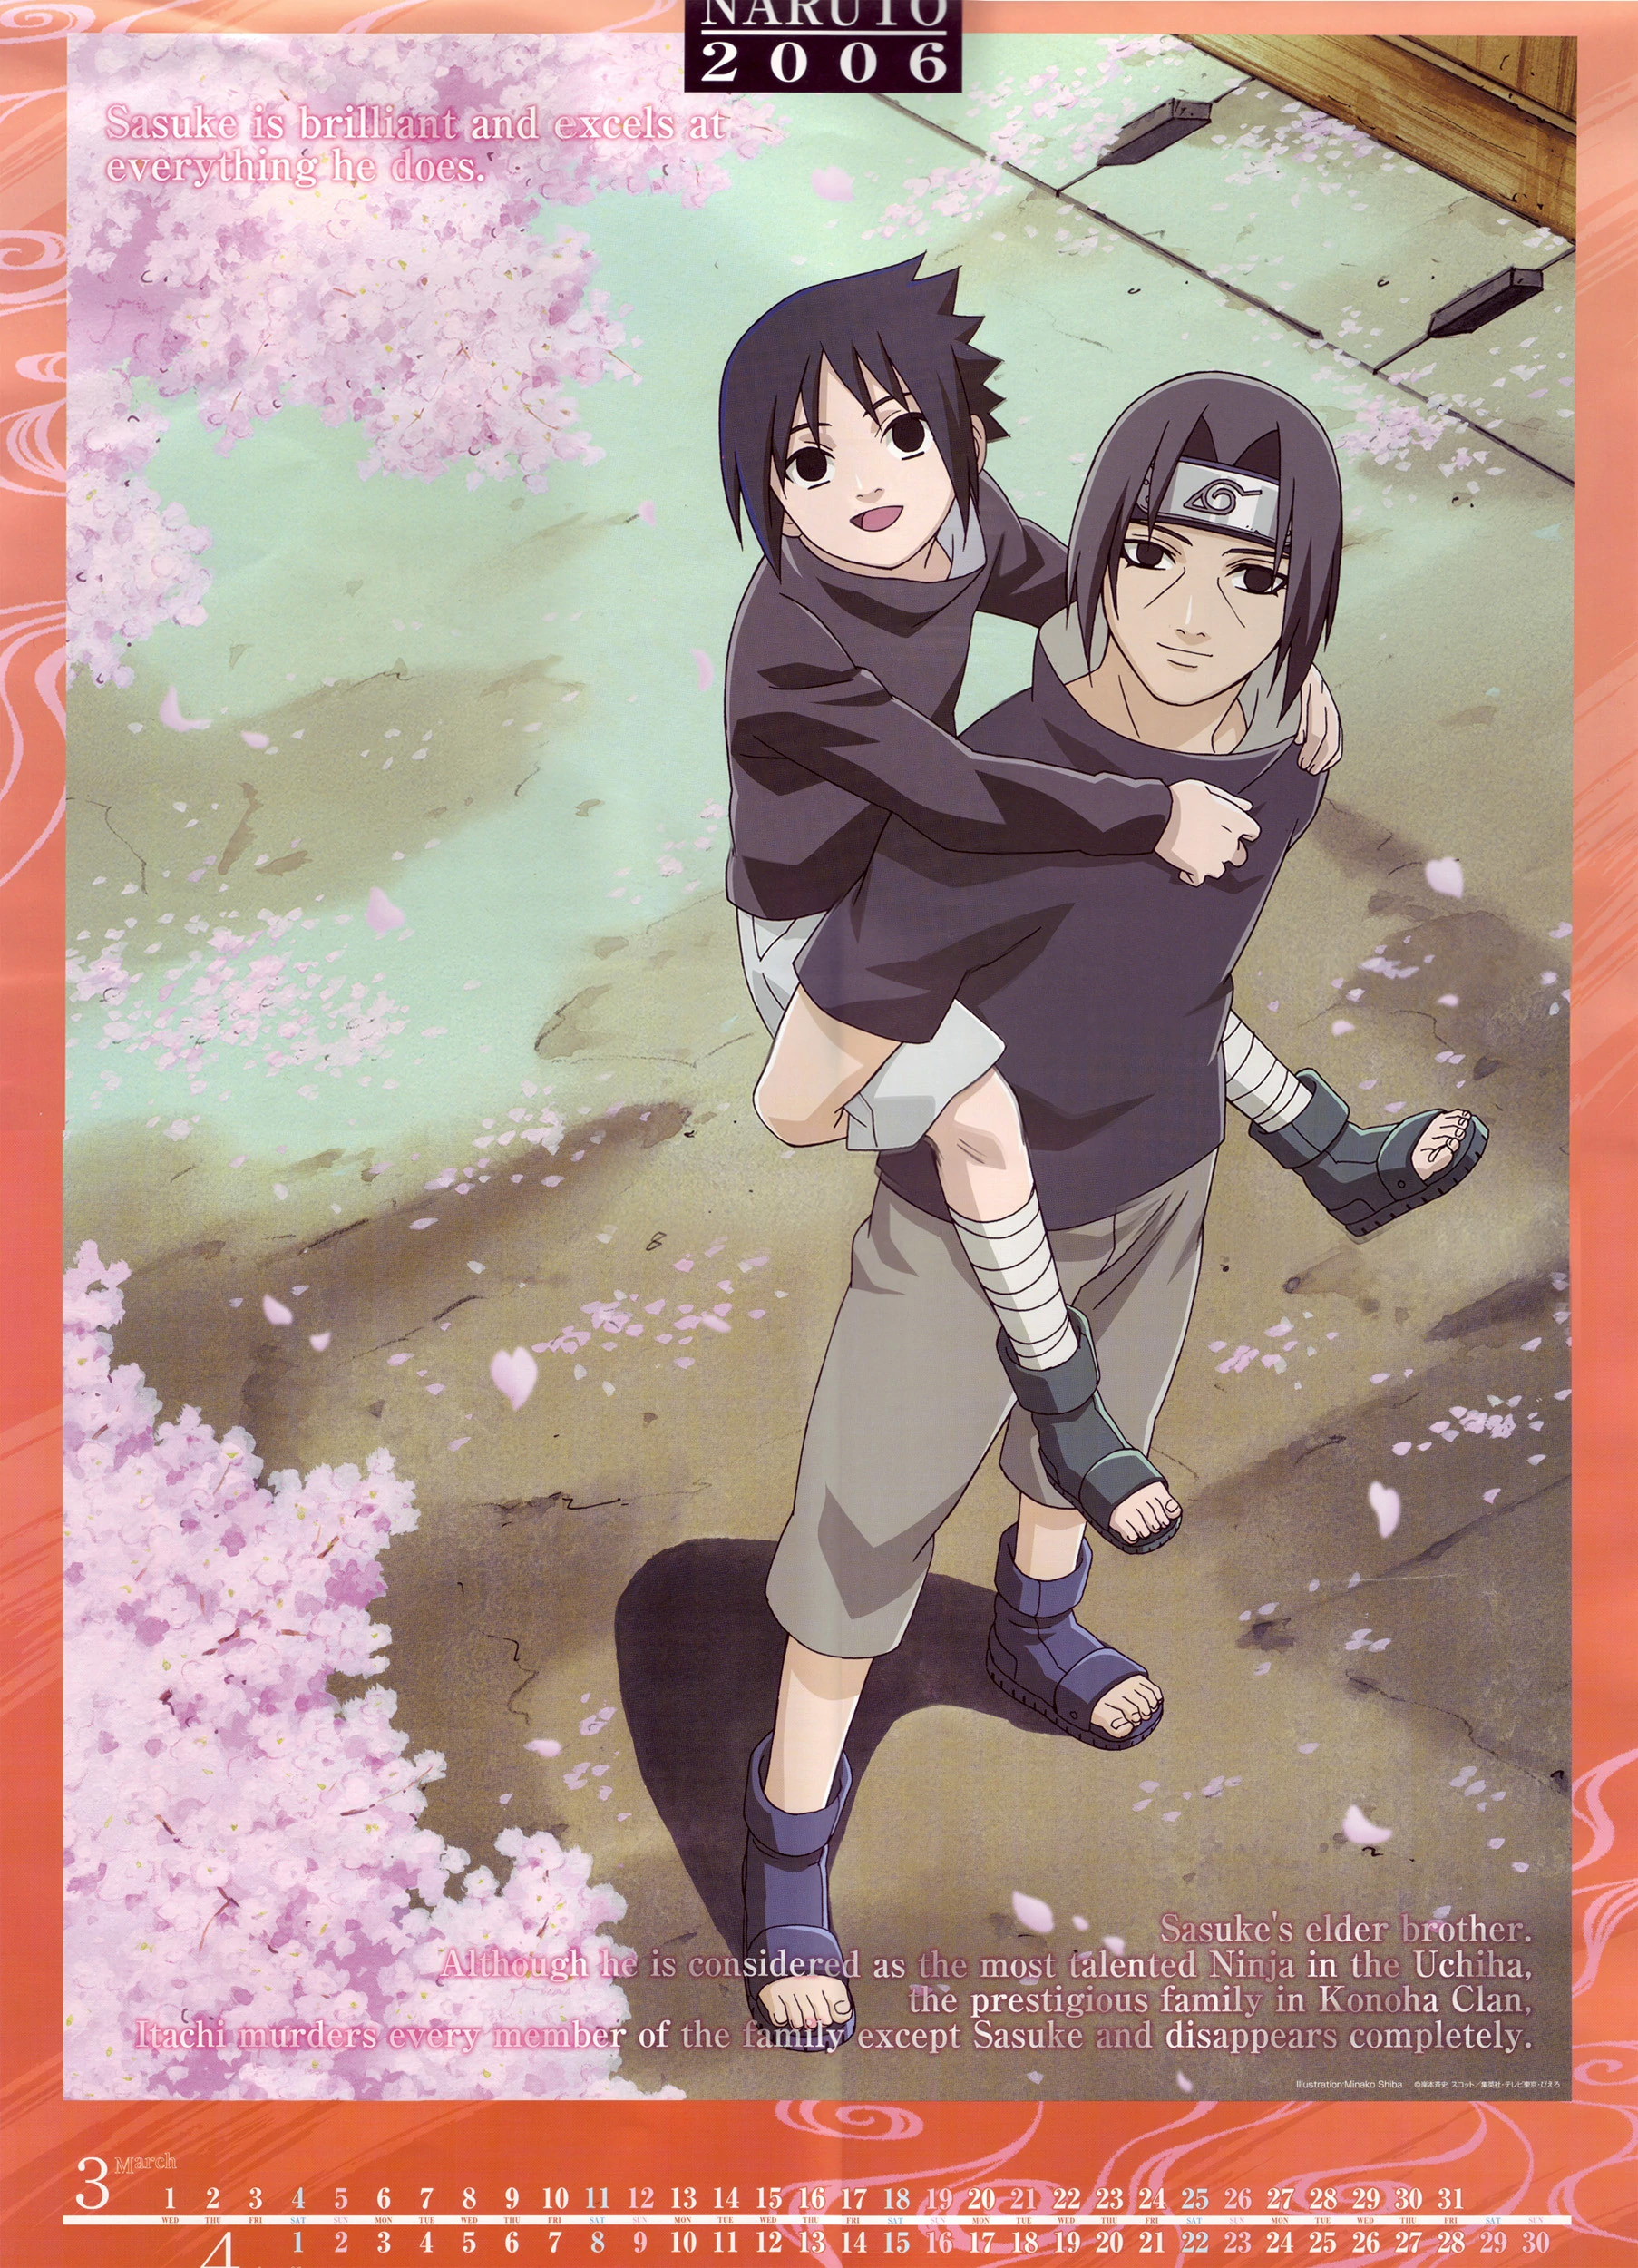 Itachi and Sasuke Look at Cherry Blossoms - Naruto 2006 Calendar 03-04